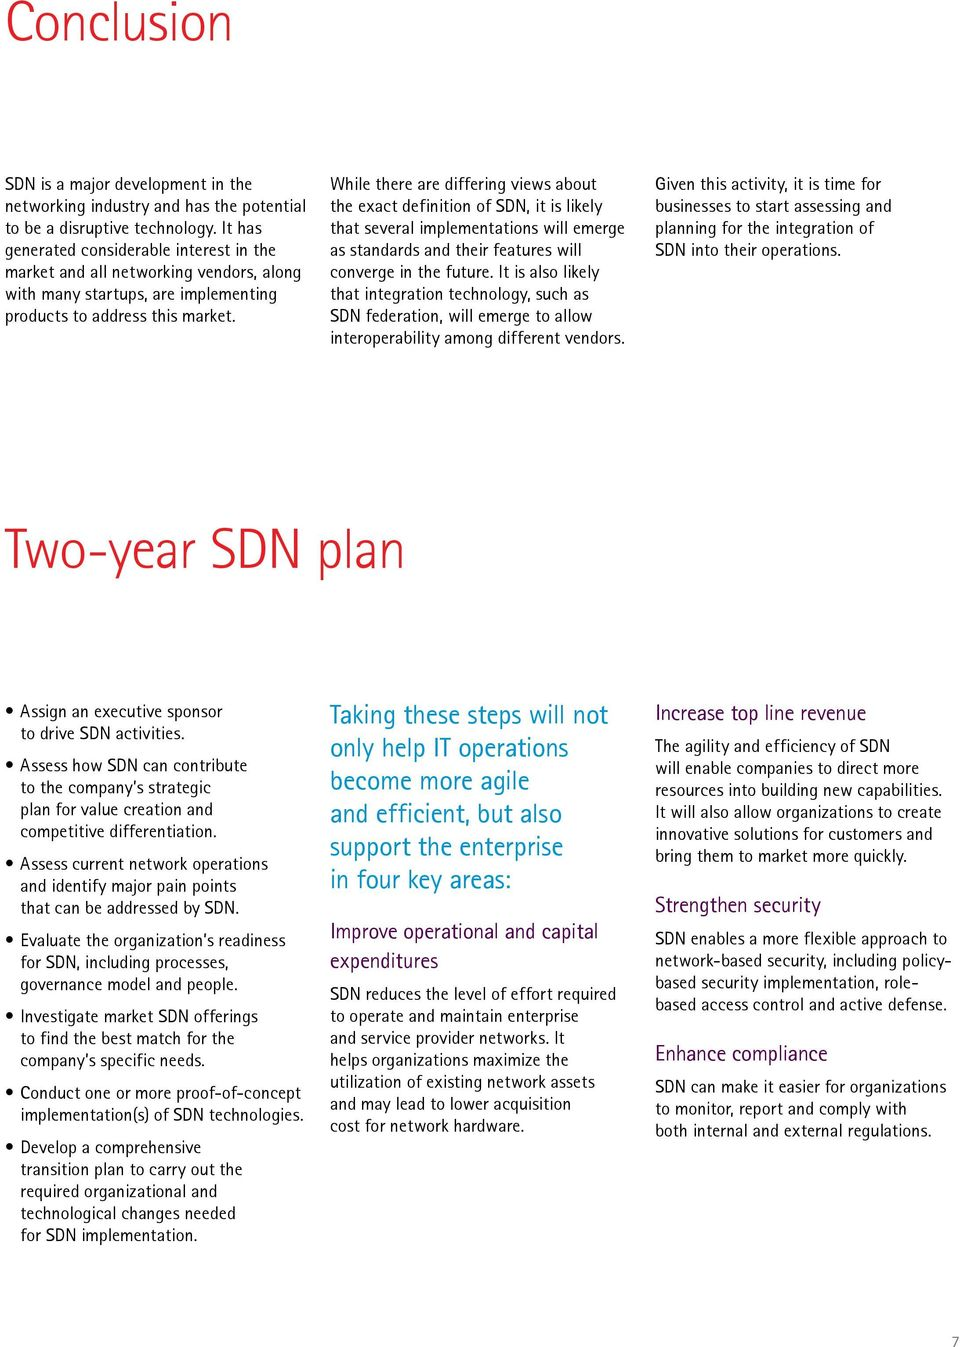 While there are differing views about the exact definition of SDN, it is likely that several implementations will emerge as standards and their features will converge in the future.